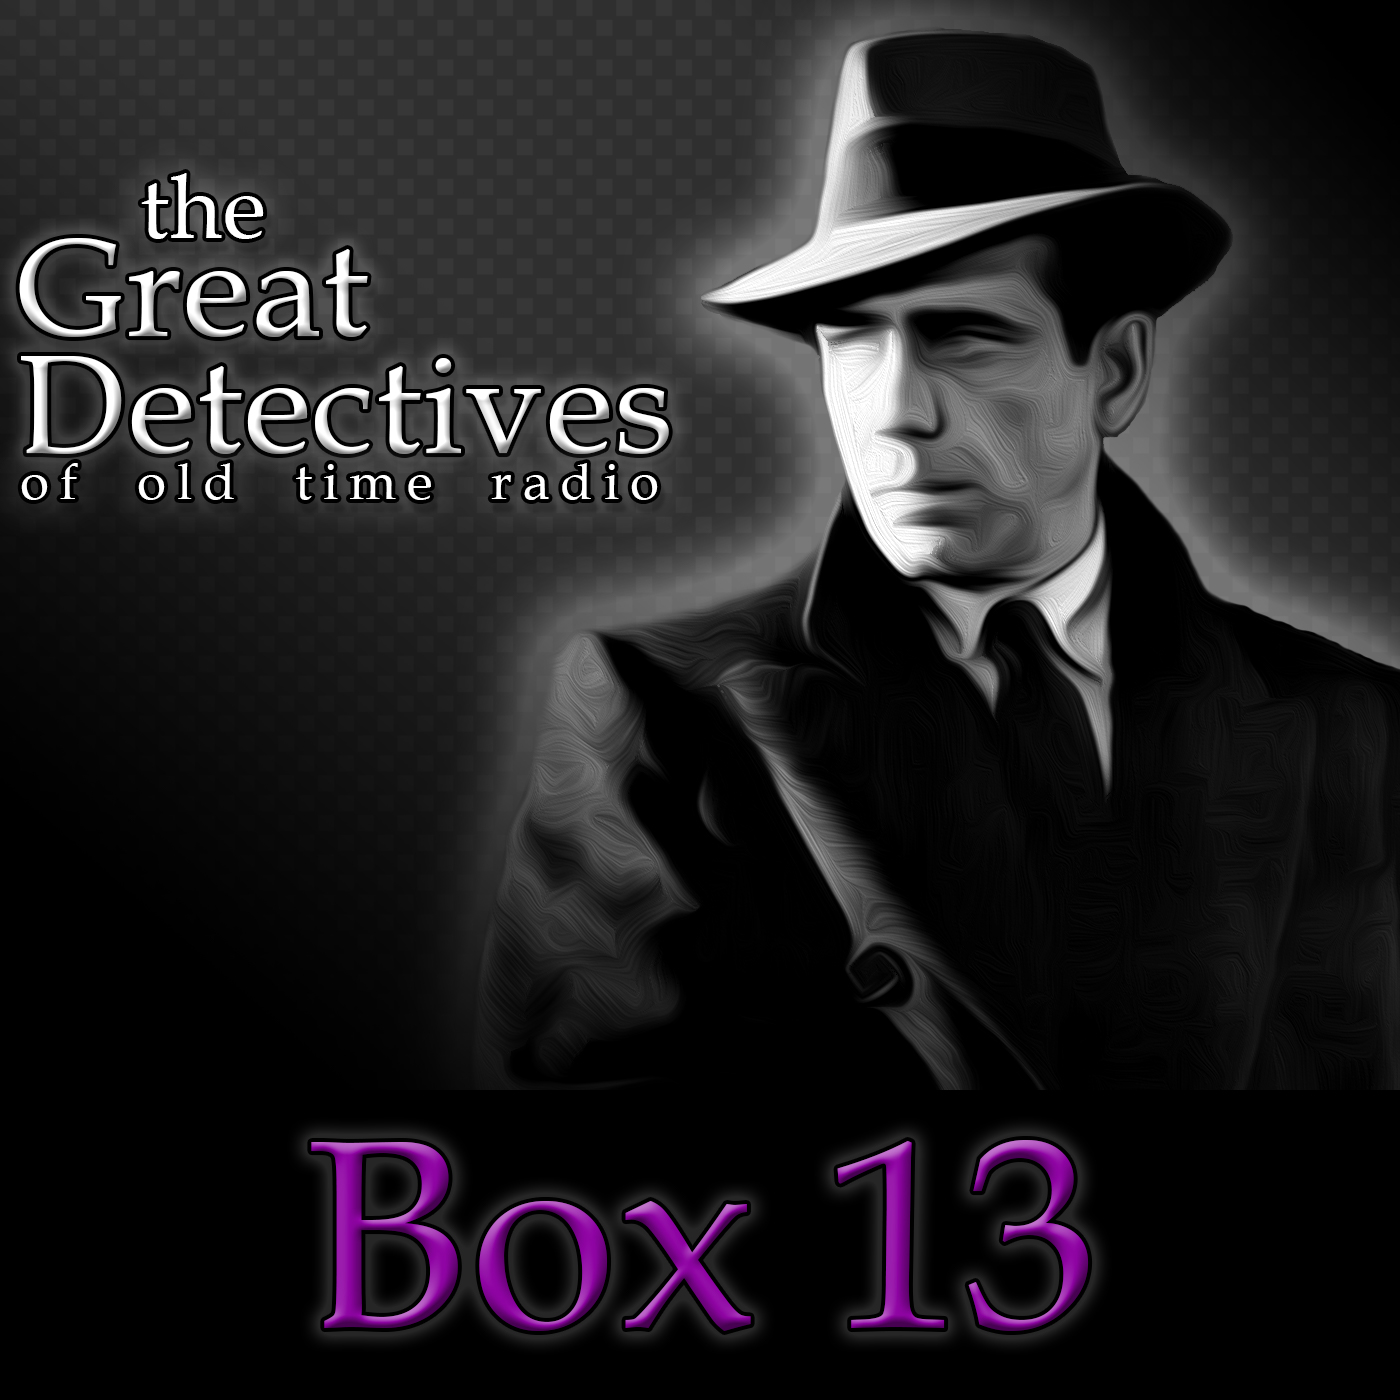 Box 13 – The Great Detectives of Old Time Radio